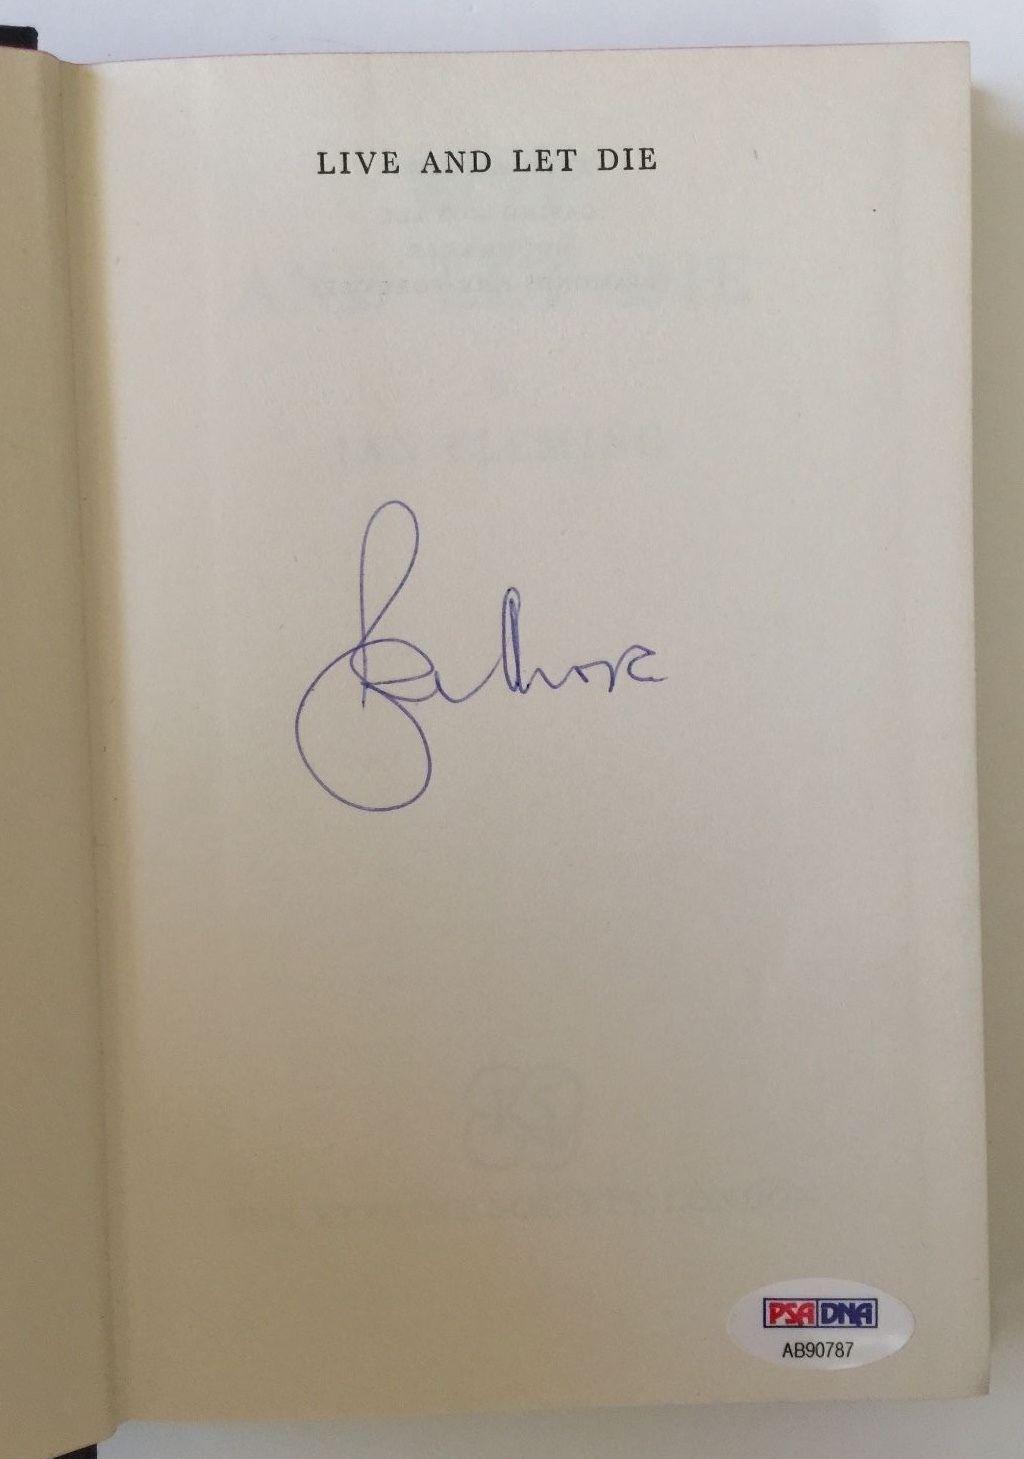 ROGER MOORE Signed JAMES BOND Live and Let Die Ian Fleming HC Book PSA/DNA COA